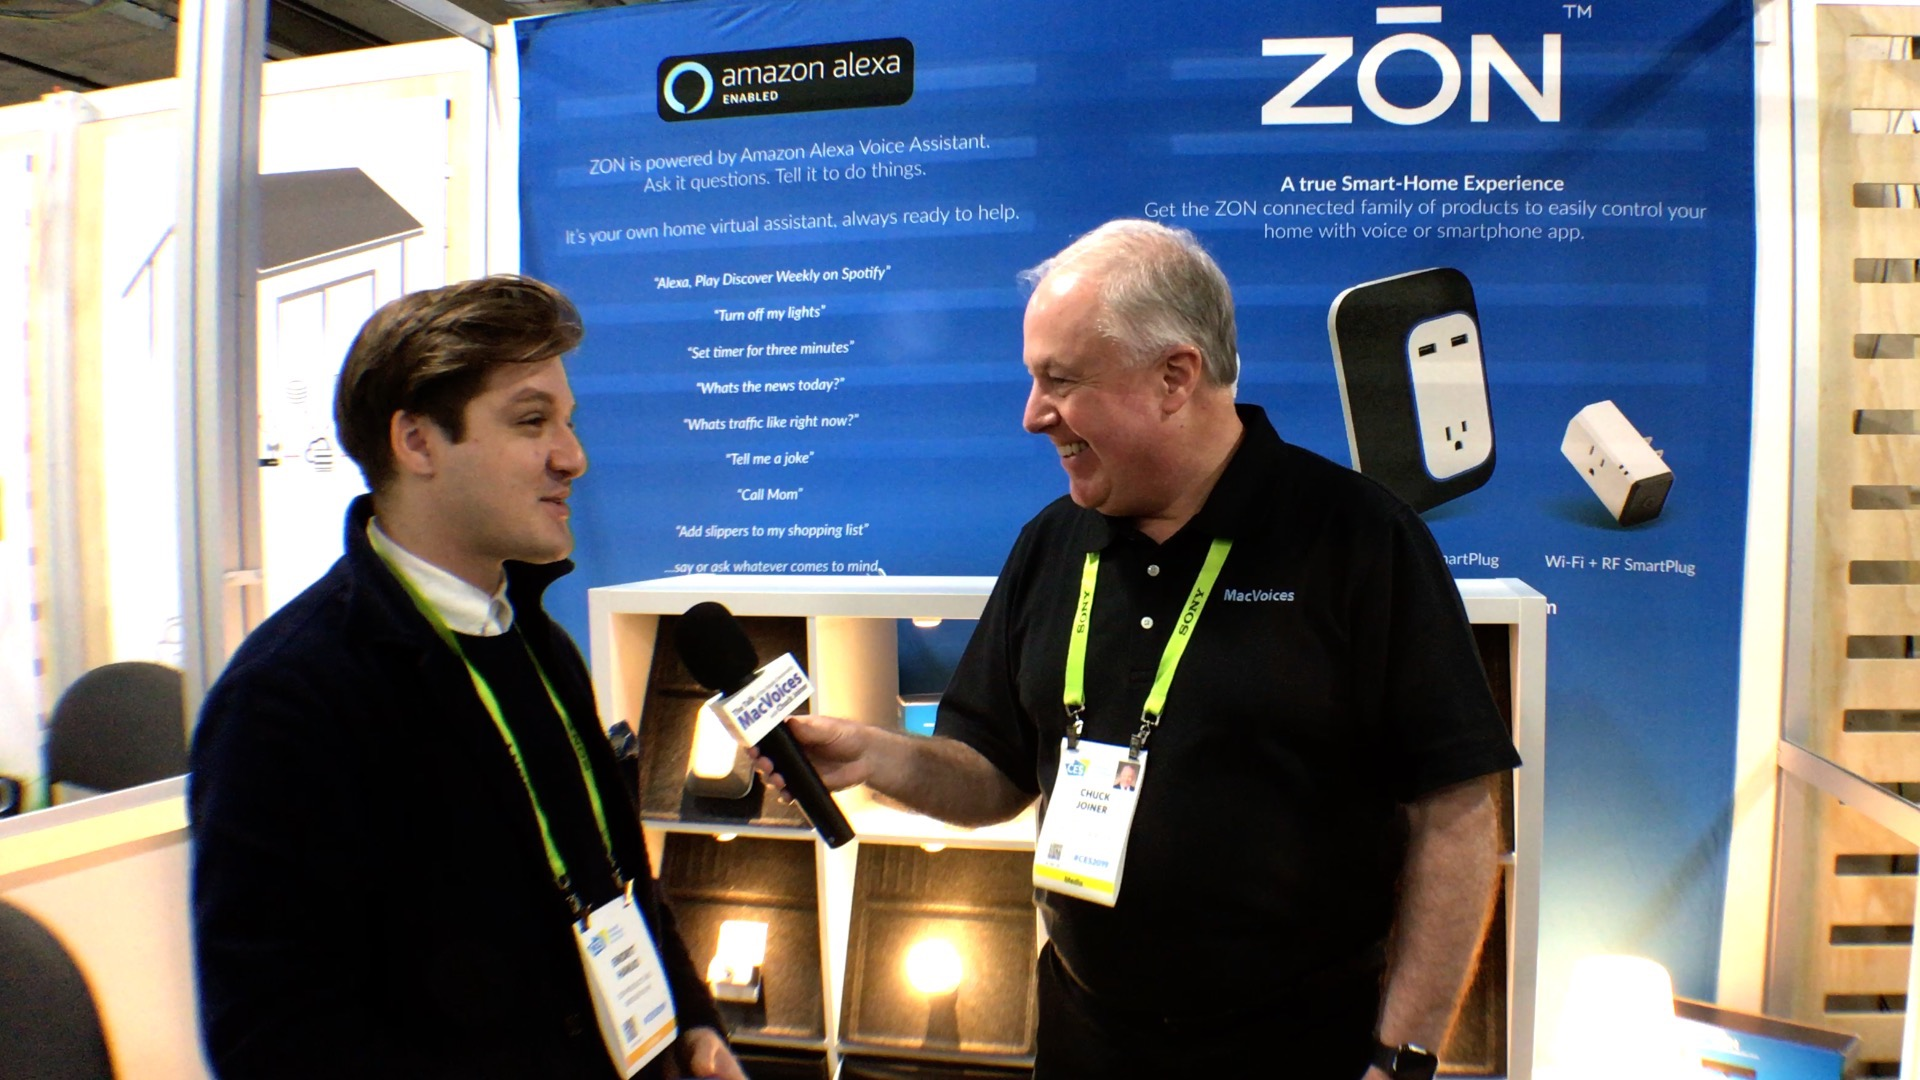 CES - Zon Simplifies The Smart Home Experience